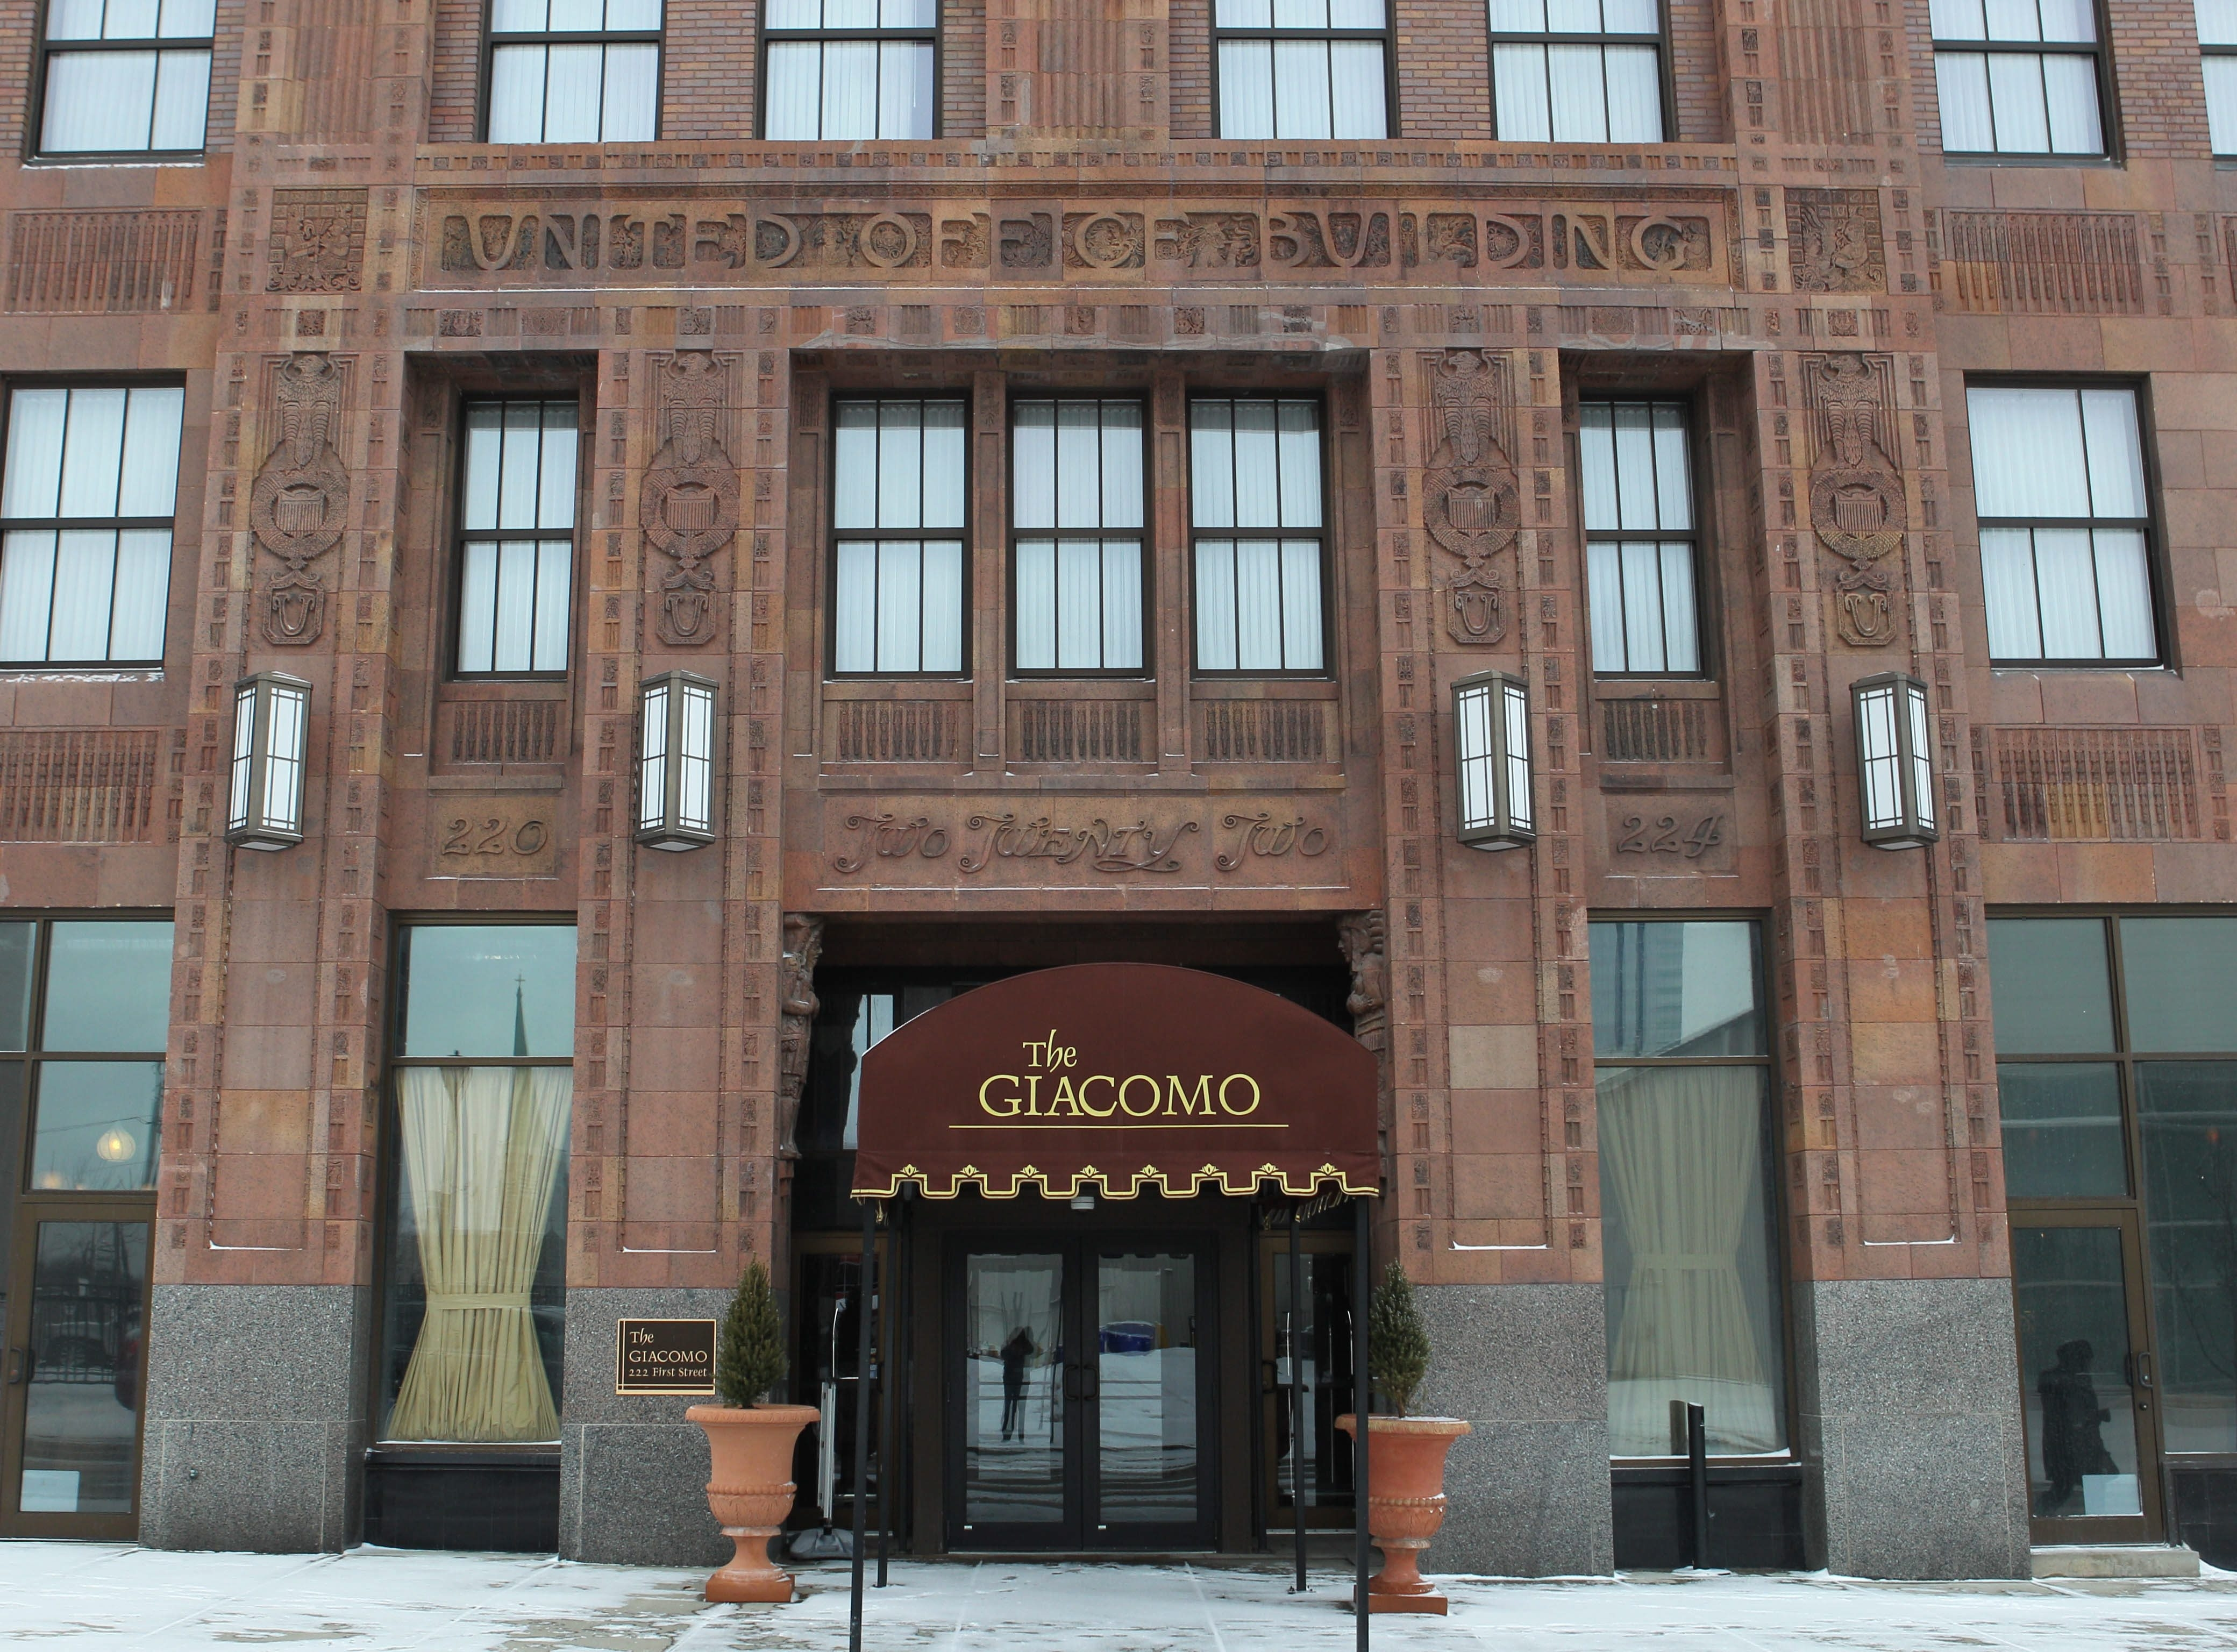 The Giacomo, formerly the United Office Building, at 222 First St., is one of the historic sites that may be on a new tour of Niagara Falls.  Photo taken,  Monday, Jan. 20, 2014.  (Sharon Cantillon/Buffalo News)